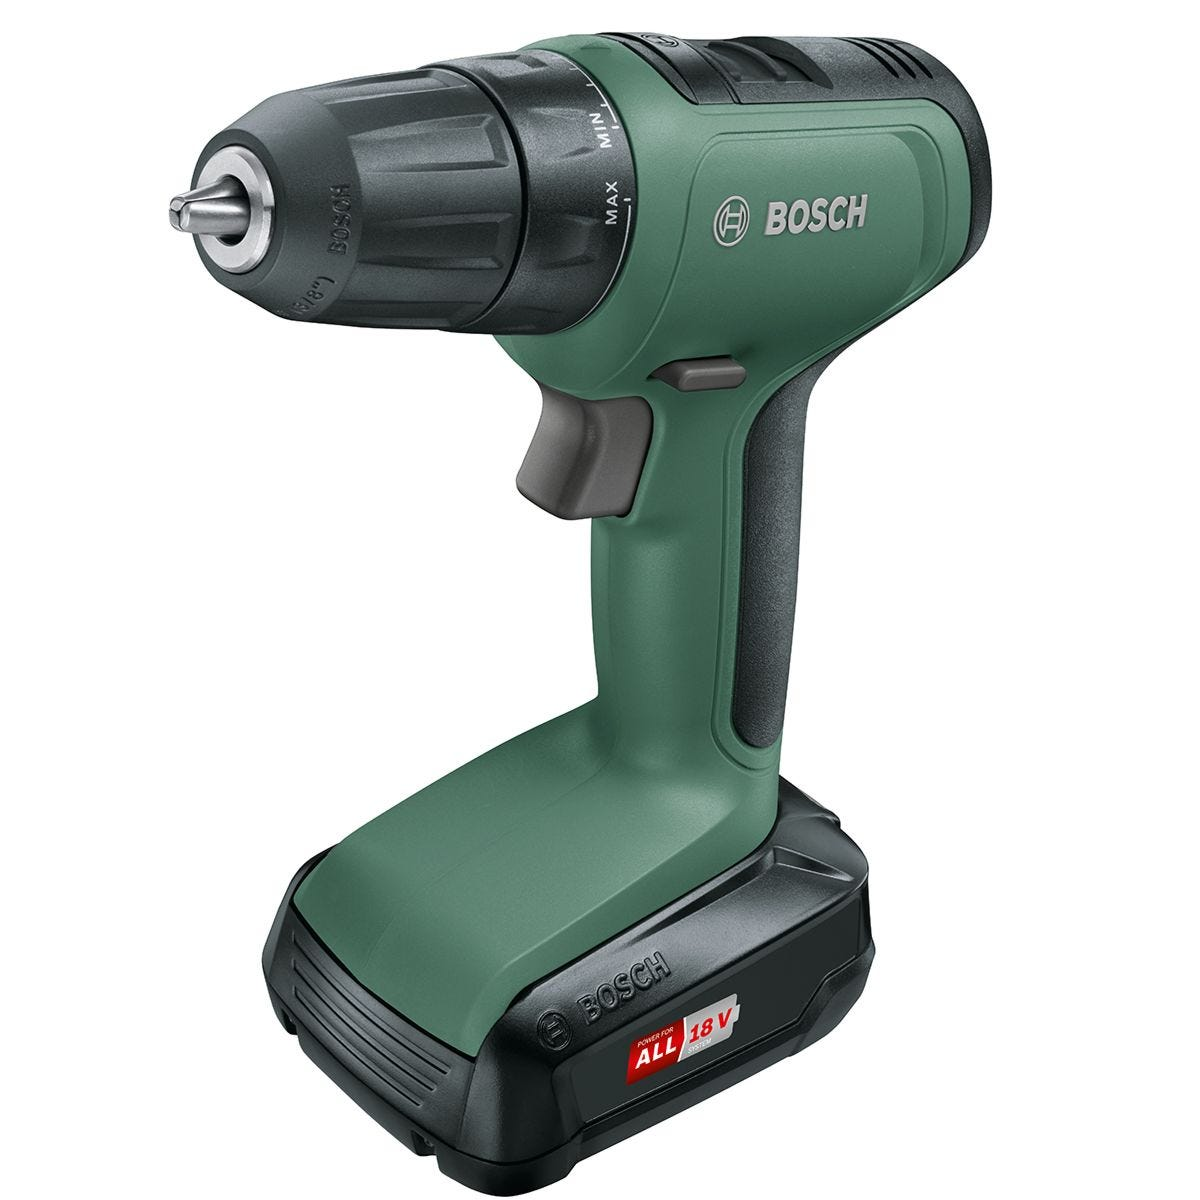 Bosch UniversalDrill 18V Lithium-ion Drill/Driver and Carry Case